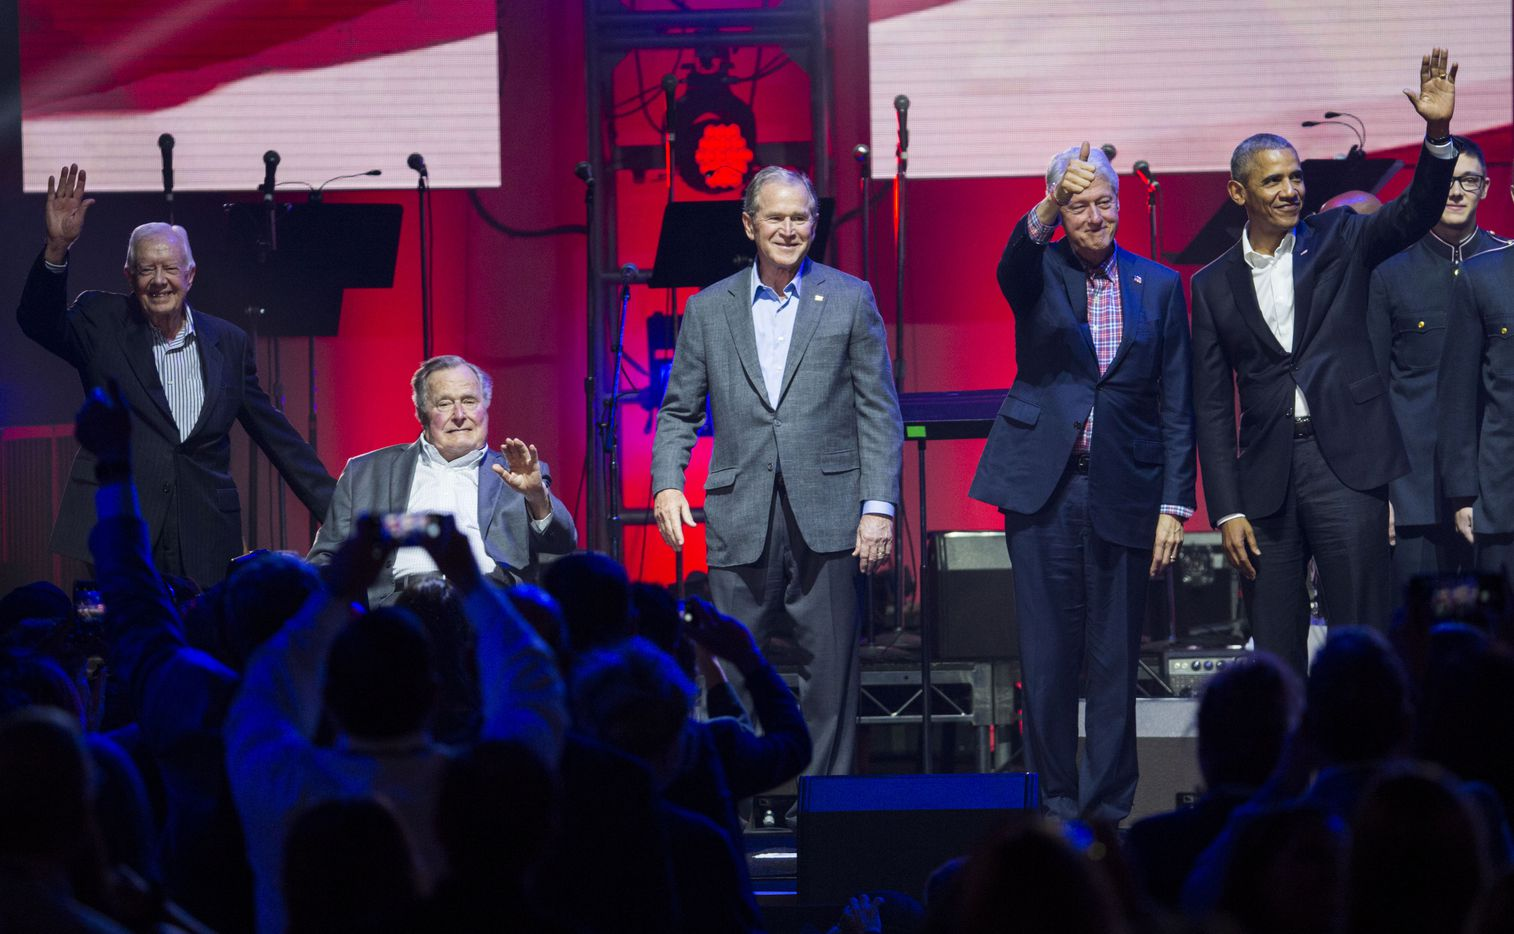 Former presidents Jimmy Carter, George H. W. Bush, George W. Bush, Bill Clinton and Barack Obama wave to audience members during Deep from the Heart: The One America Appeal Concert.